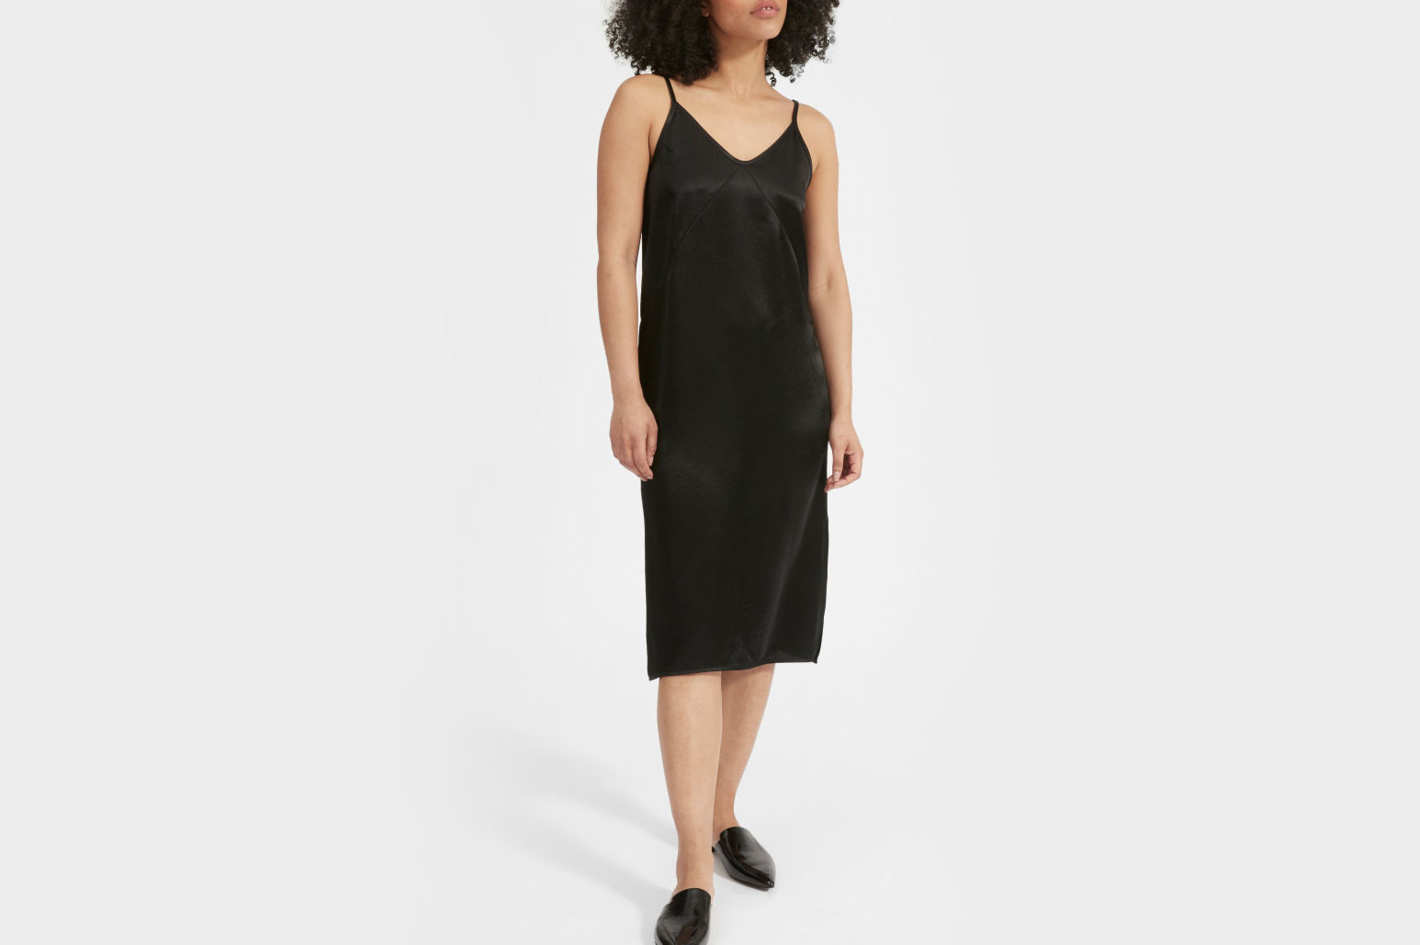 Everlane Party Slip Dress